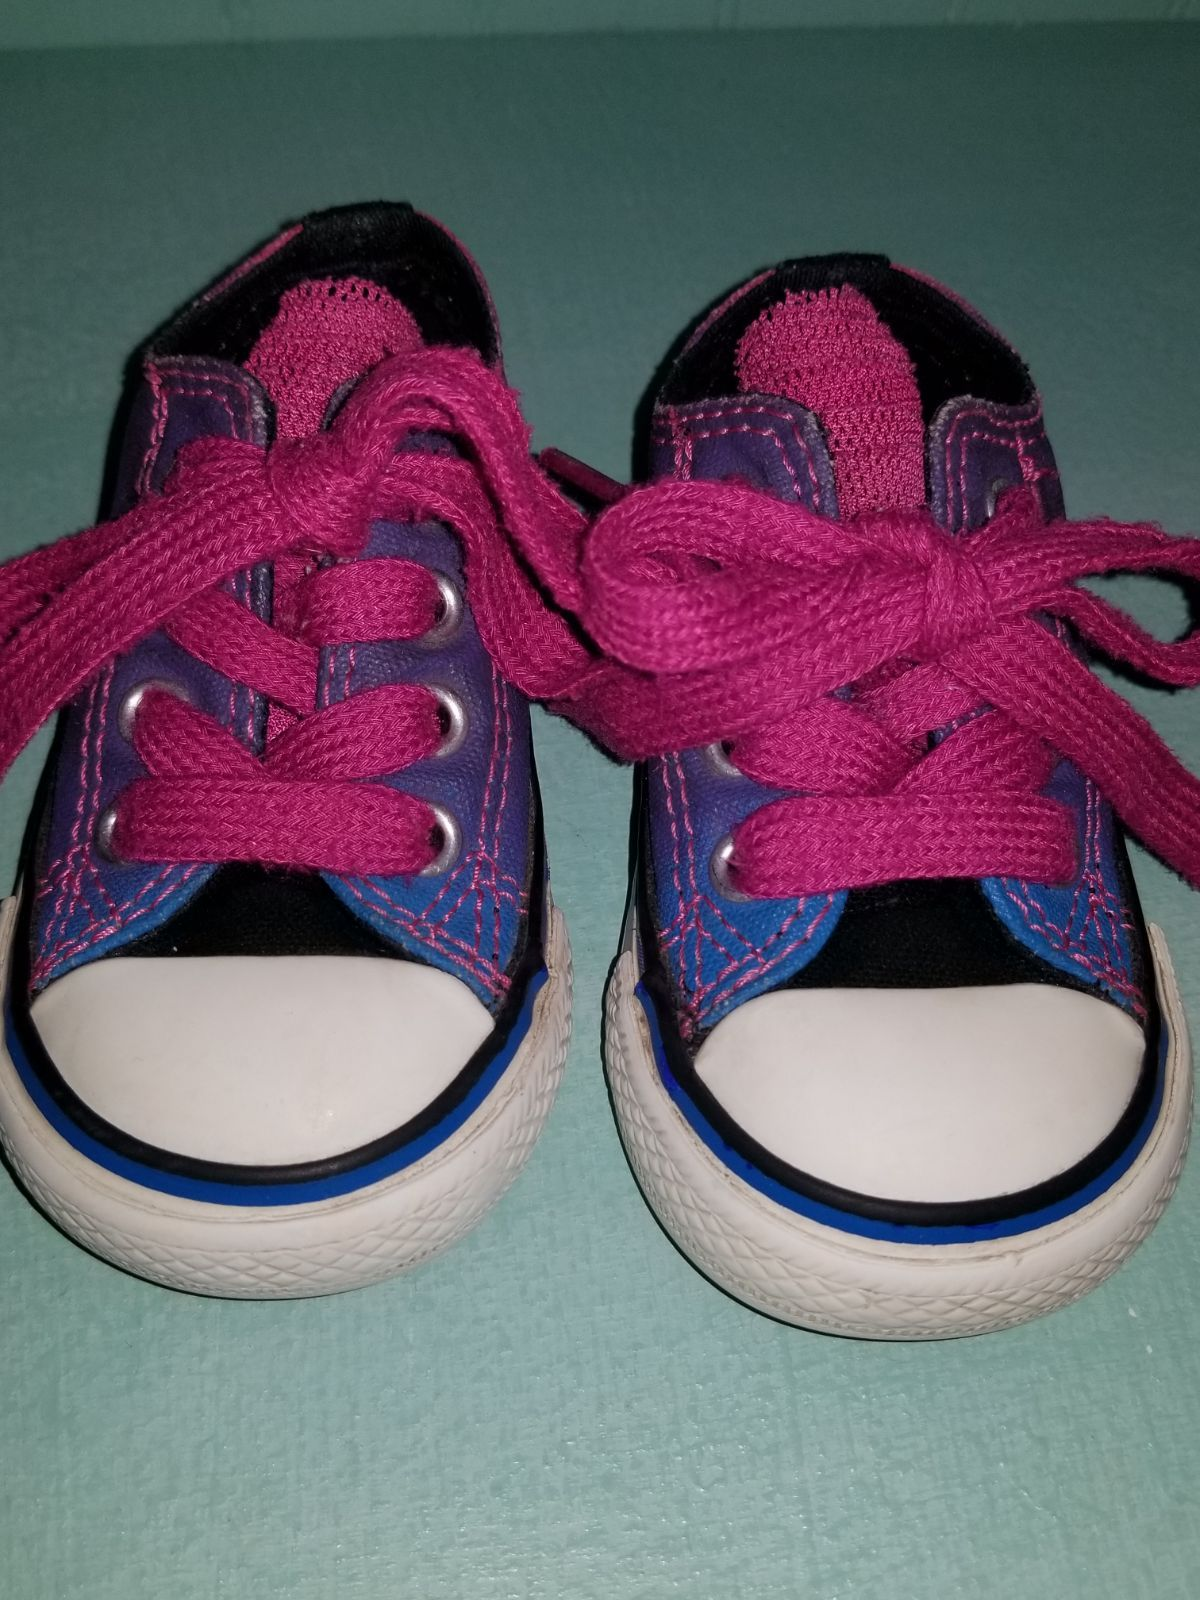 Converse, Infant, Baby shoes